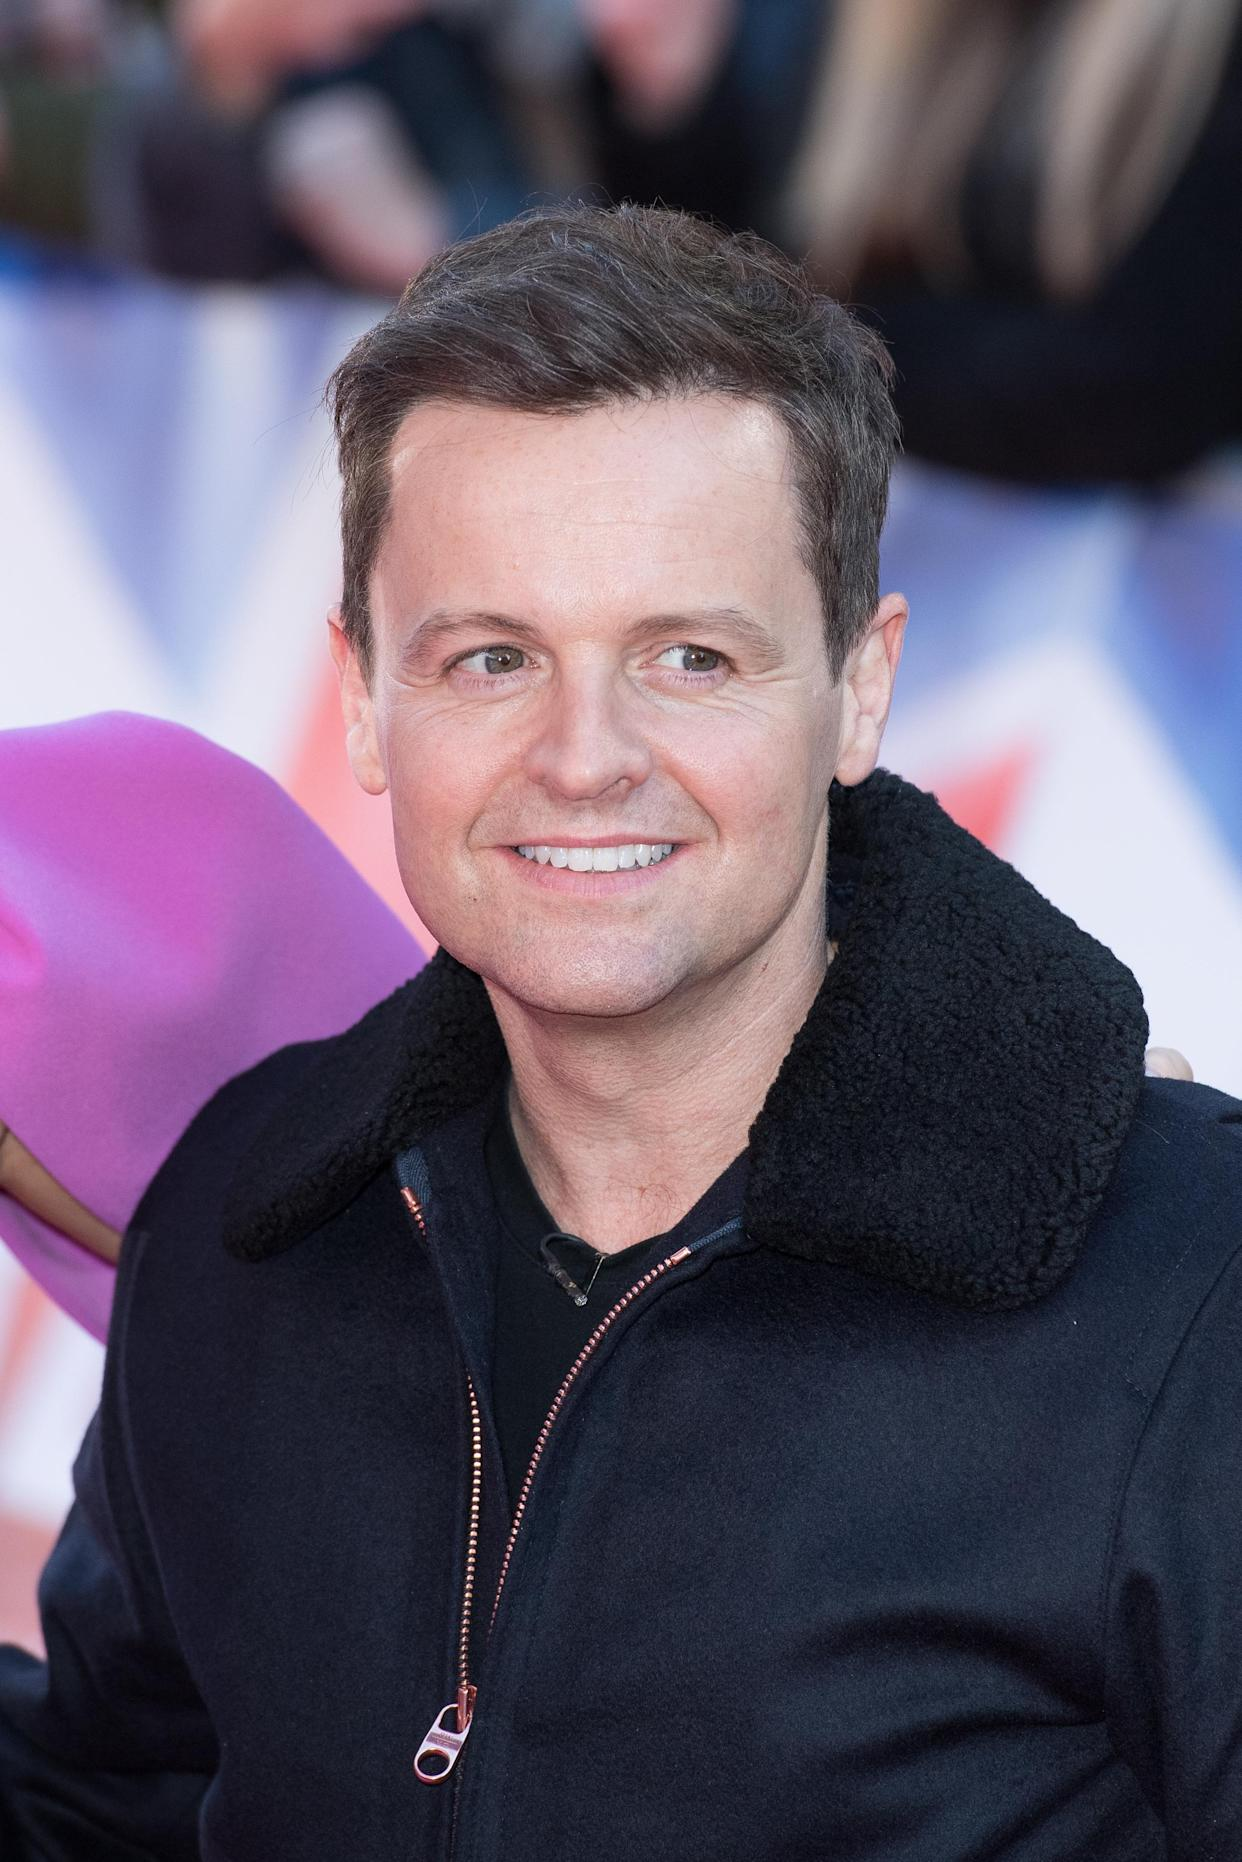 Declan Donnelly attends the Britain's Got Talent 2020 photocall at London Palladium on January 19, 2020 in London, England. (Photo by Jeff Spicer/WireImage)